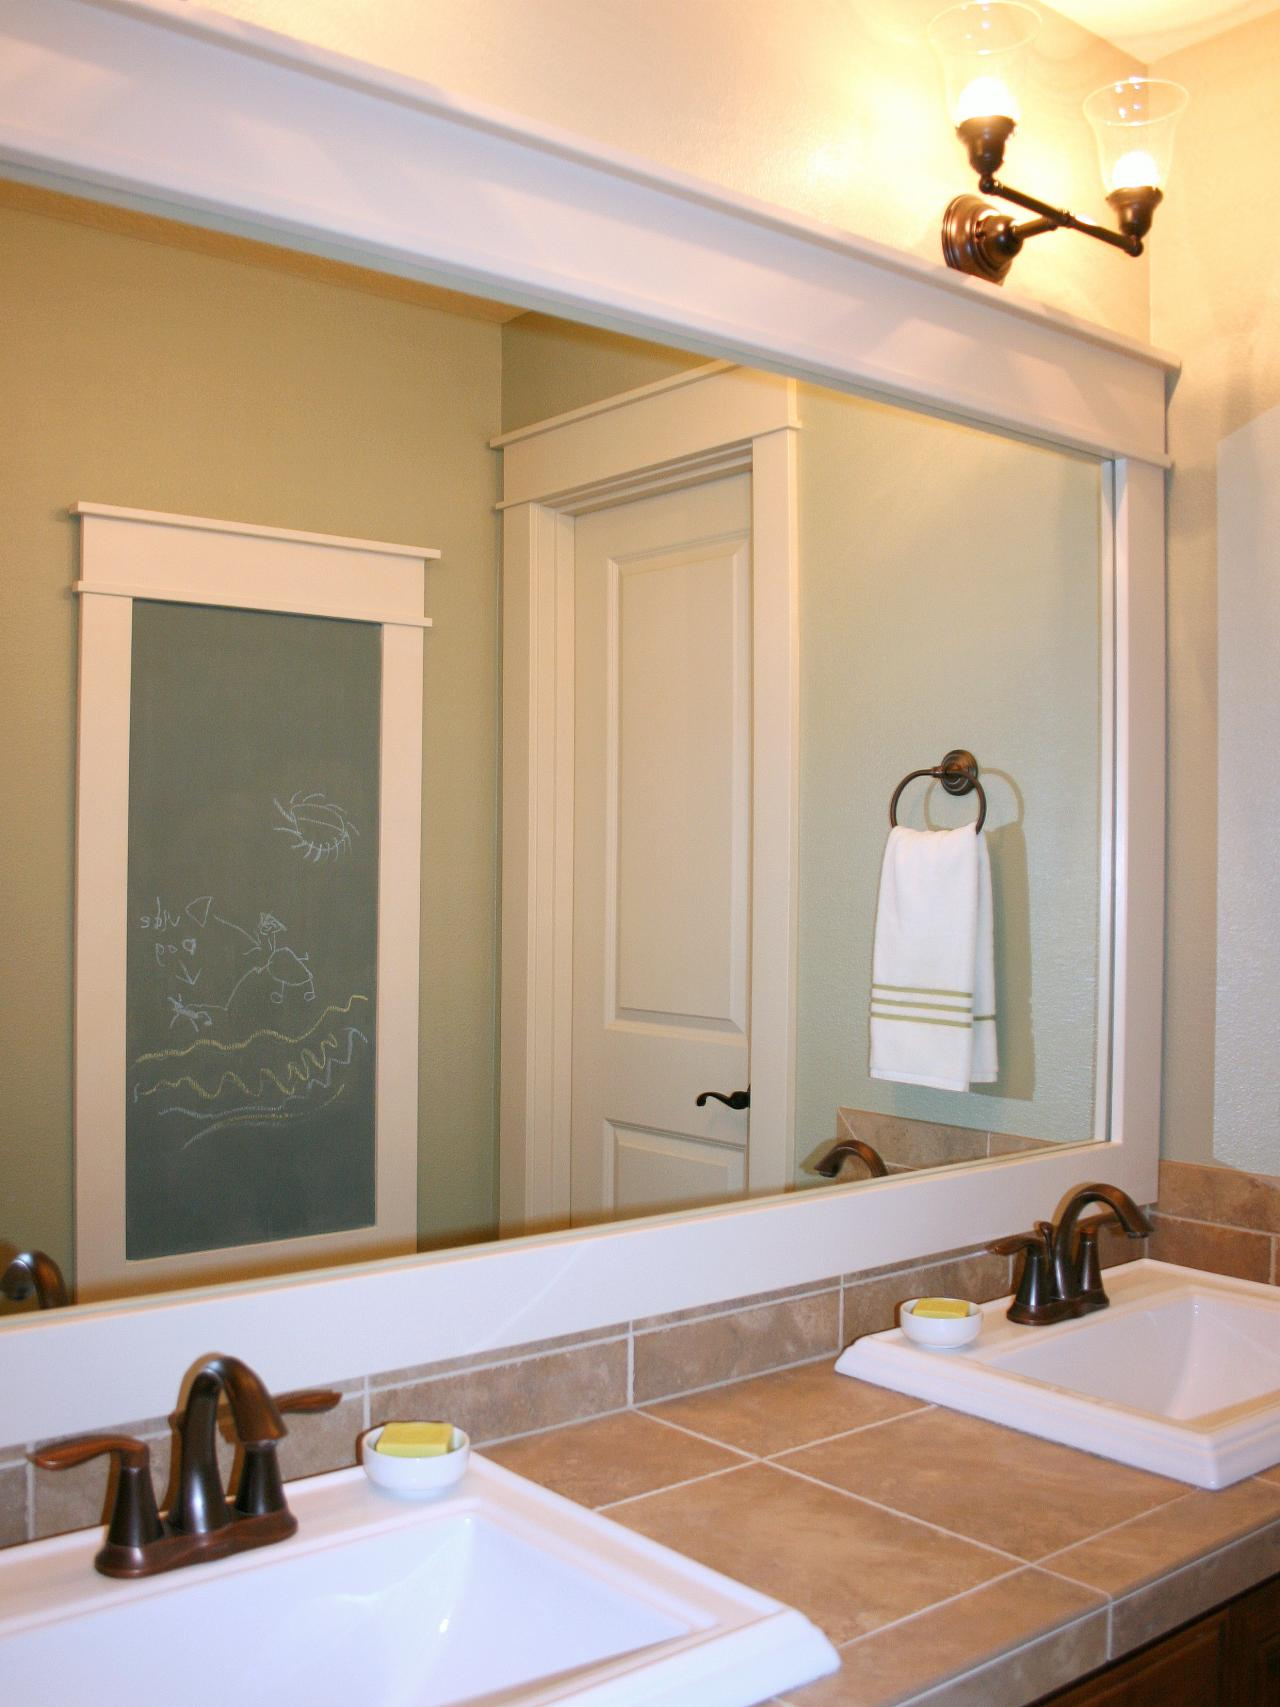 Modern How to Frame a Mirror large framed bathroom mirrors